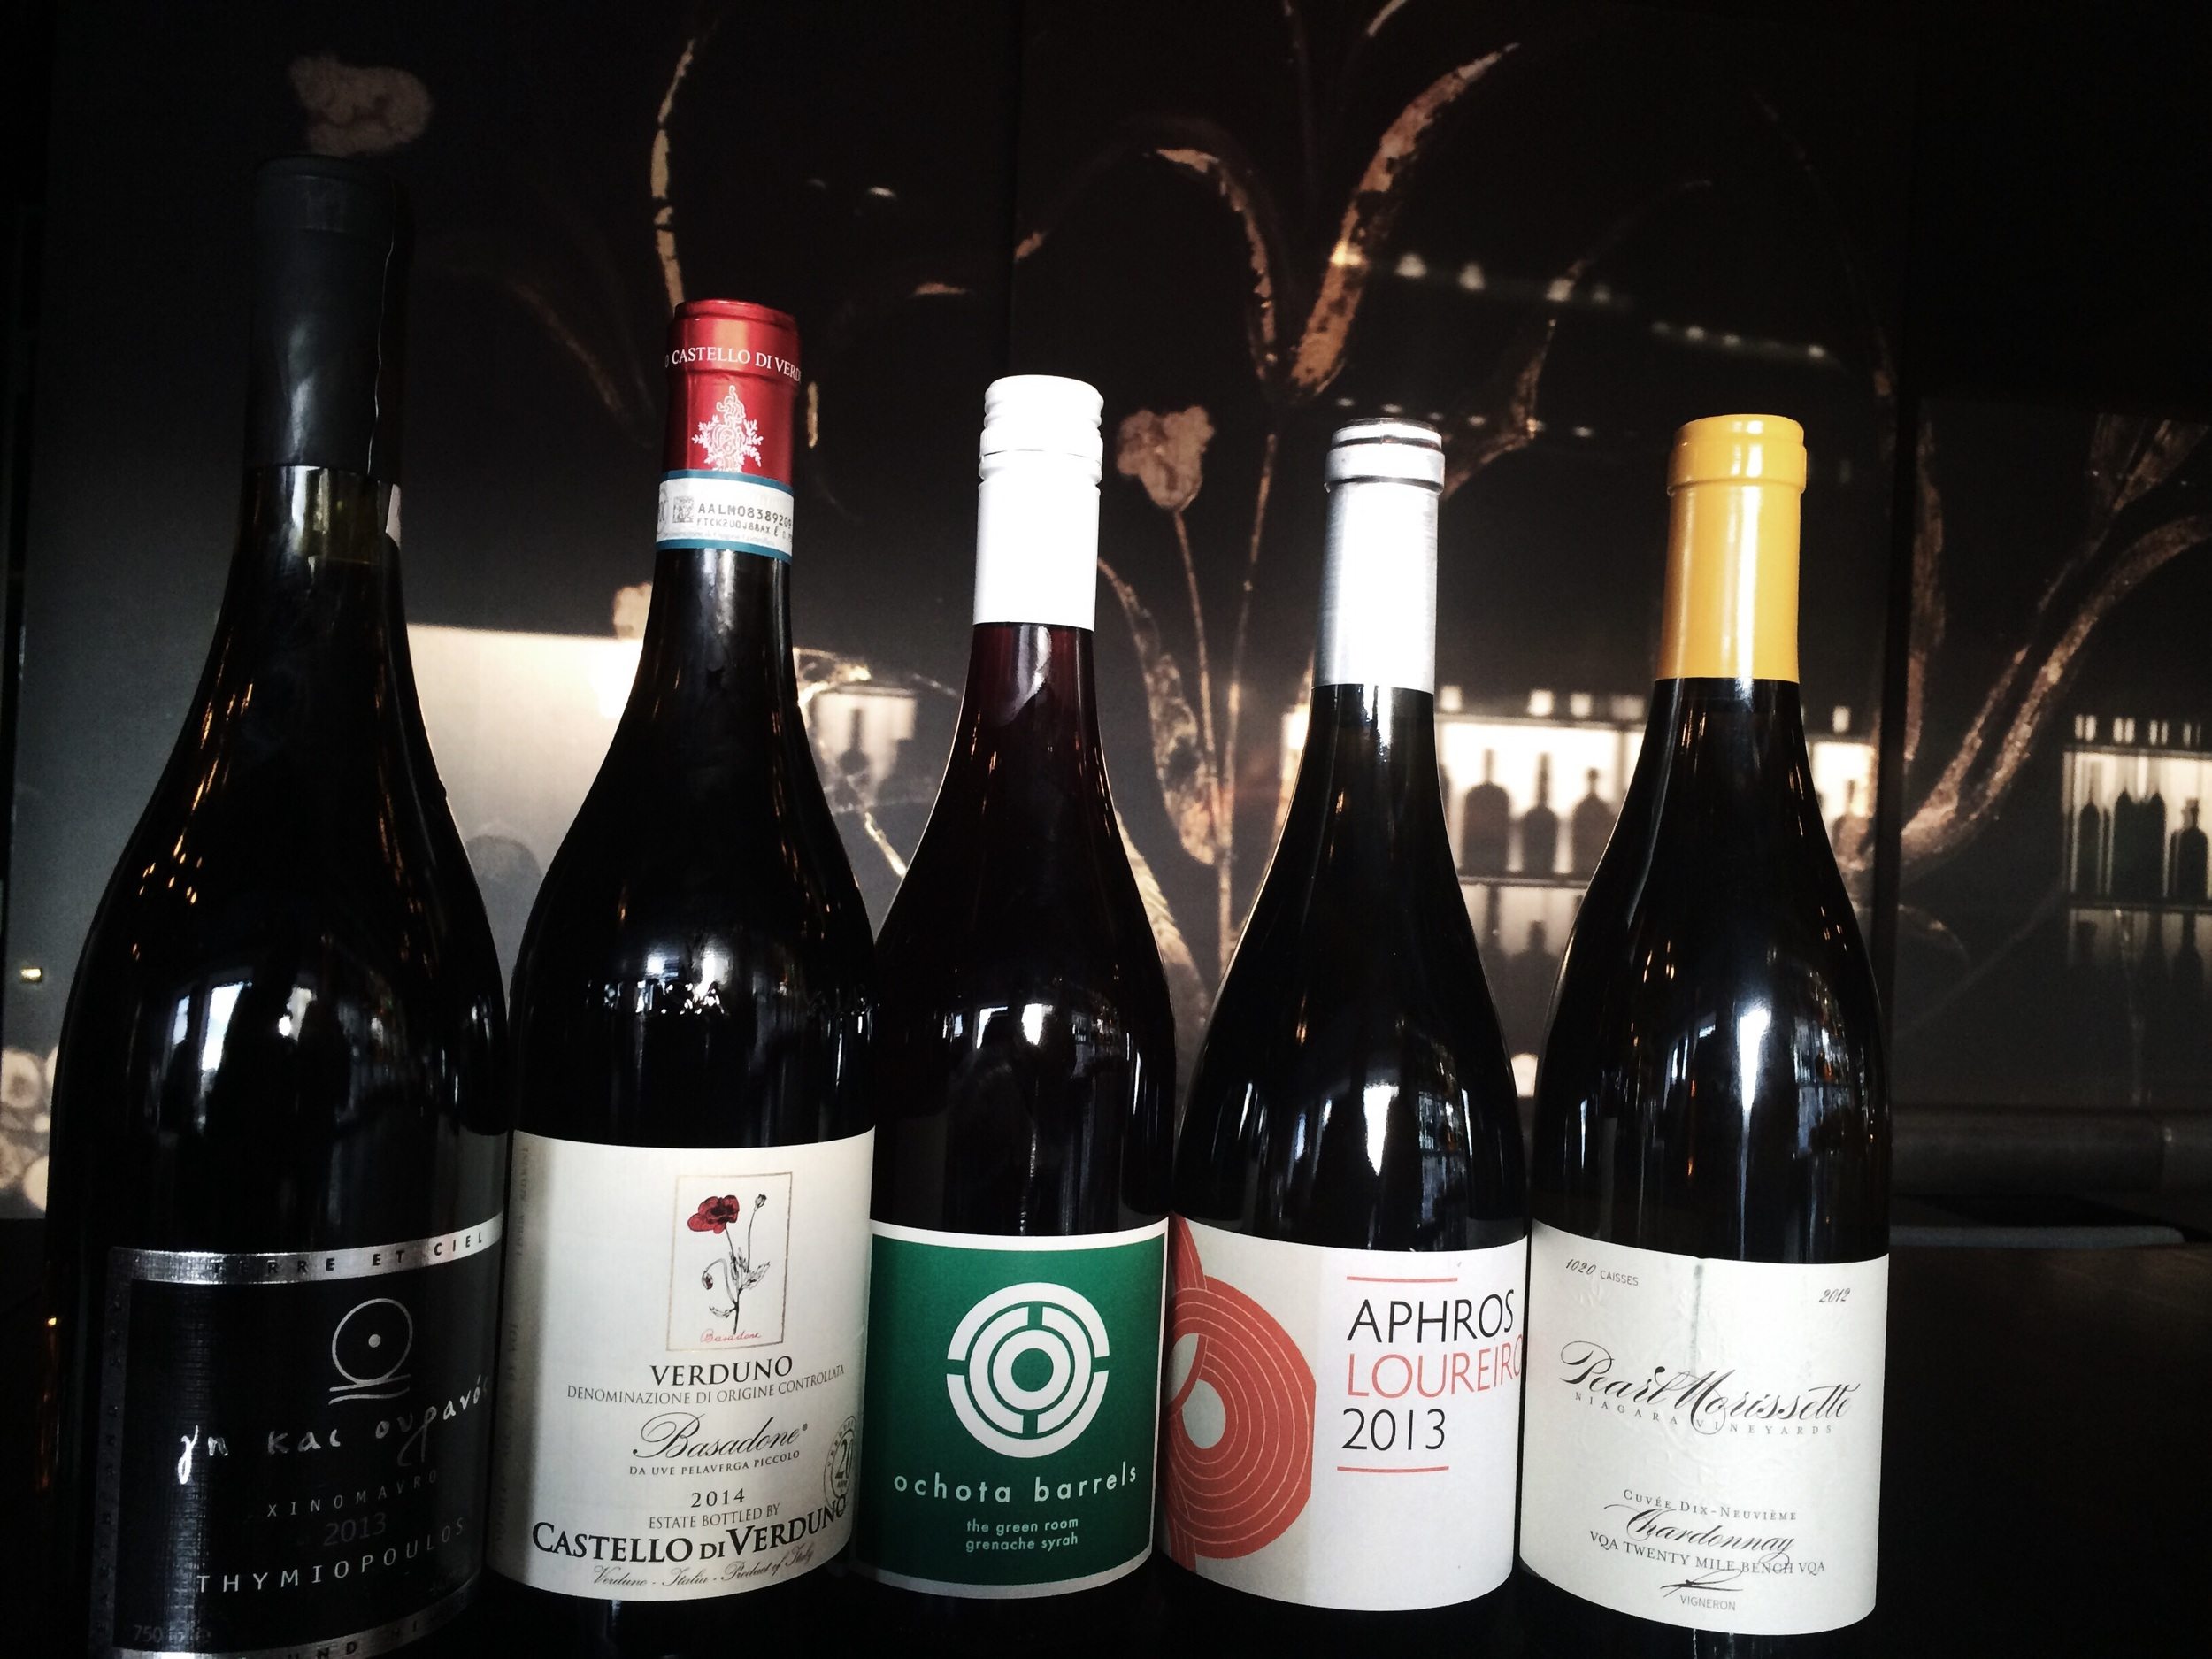 Xinonavro Earth and Sky, Pelaverga 'Basadone', Loureiro from Aphros,  Grenache/Syrah from Ochota Barrels and the 19ième Chard from PearlMorissette.